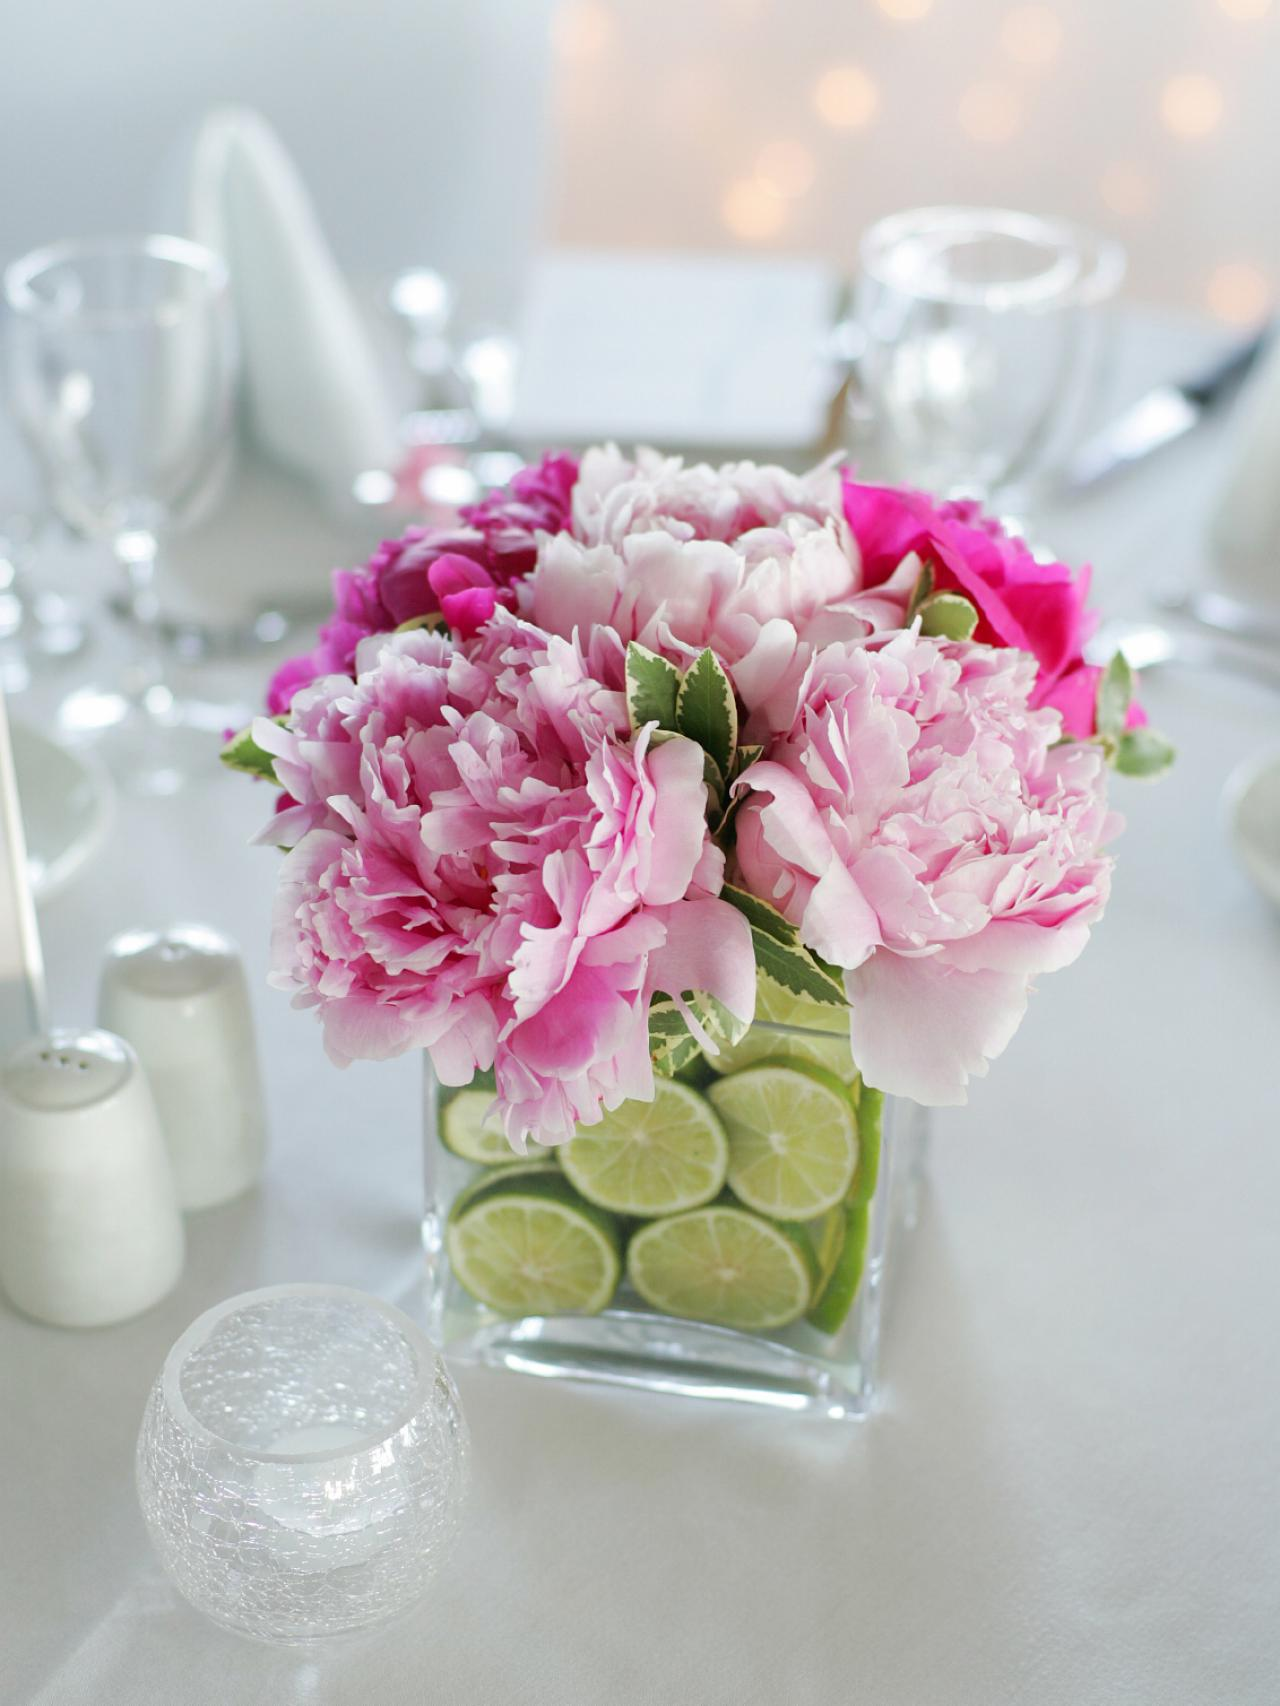 Party centerpieces entertaining ideas themes for